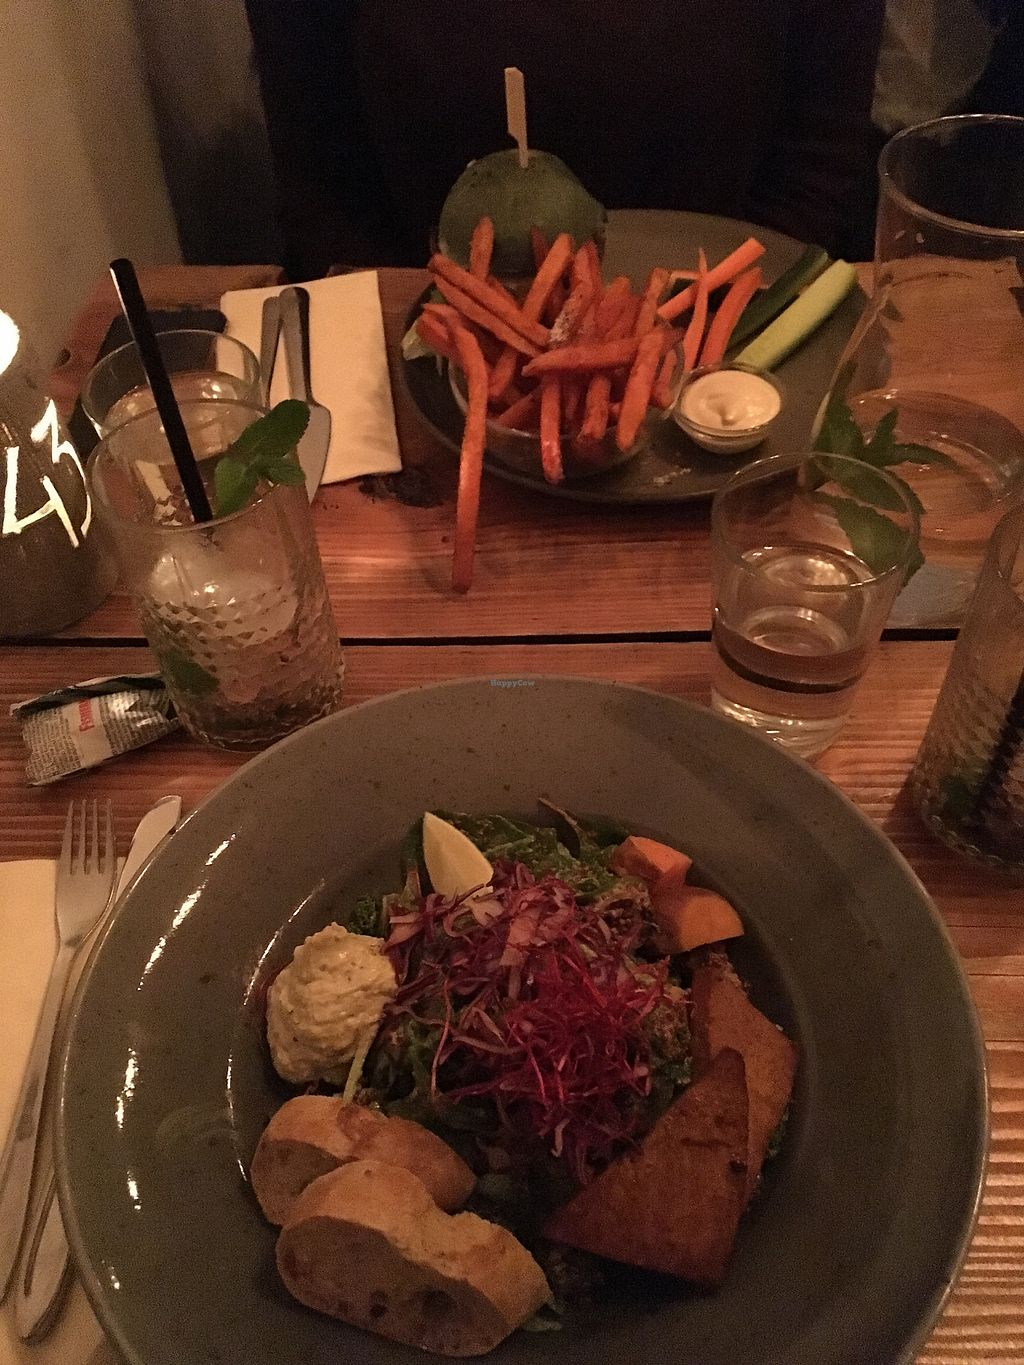 """Photo of Souls  by <a href=""""/members/profile/Anais1992"""">Anais1992</a> <br/>Soul burger with sweet potato fries and a salat with edamame, hummus, tofu, pesto and quinoa! <br/> February 17, 2018  - <a href='/contact/abuse/image/71701/360528'>Report</a>"""